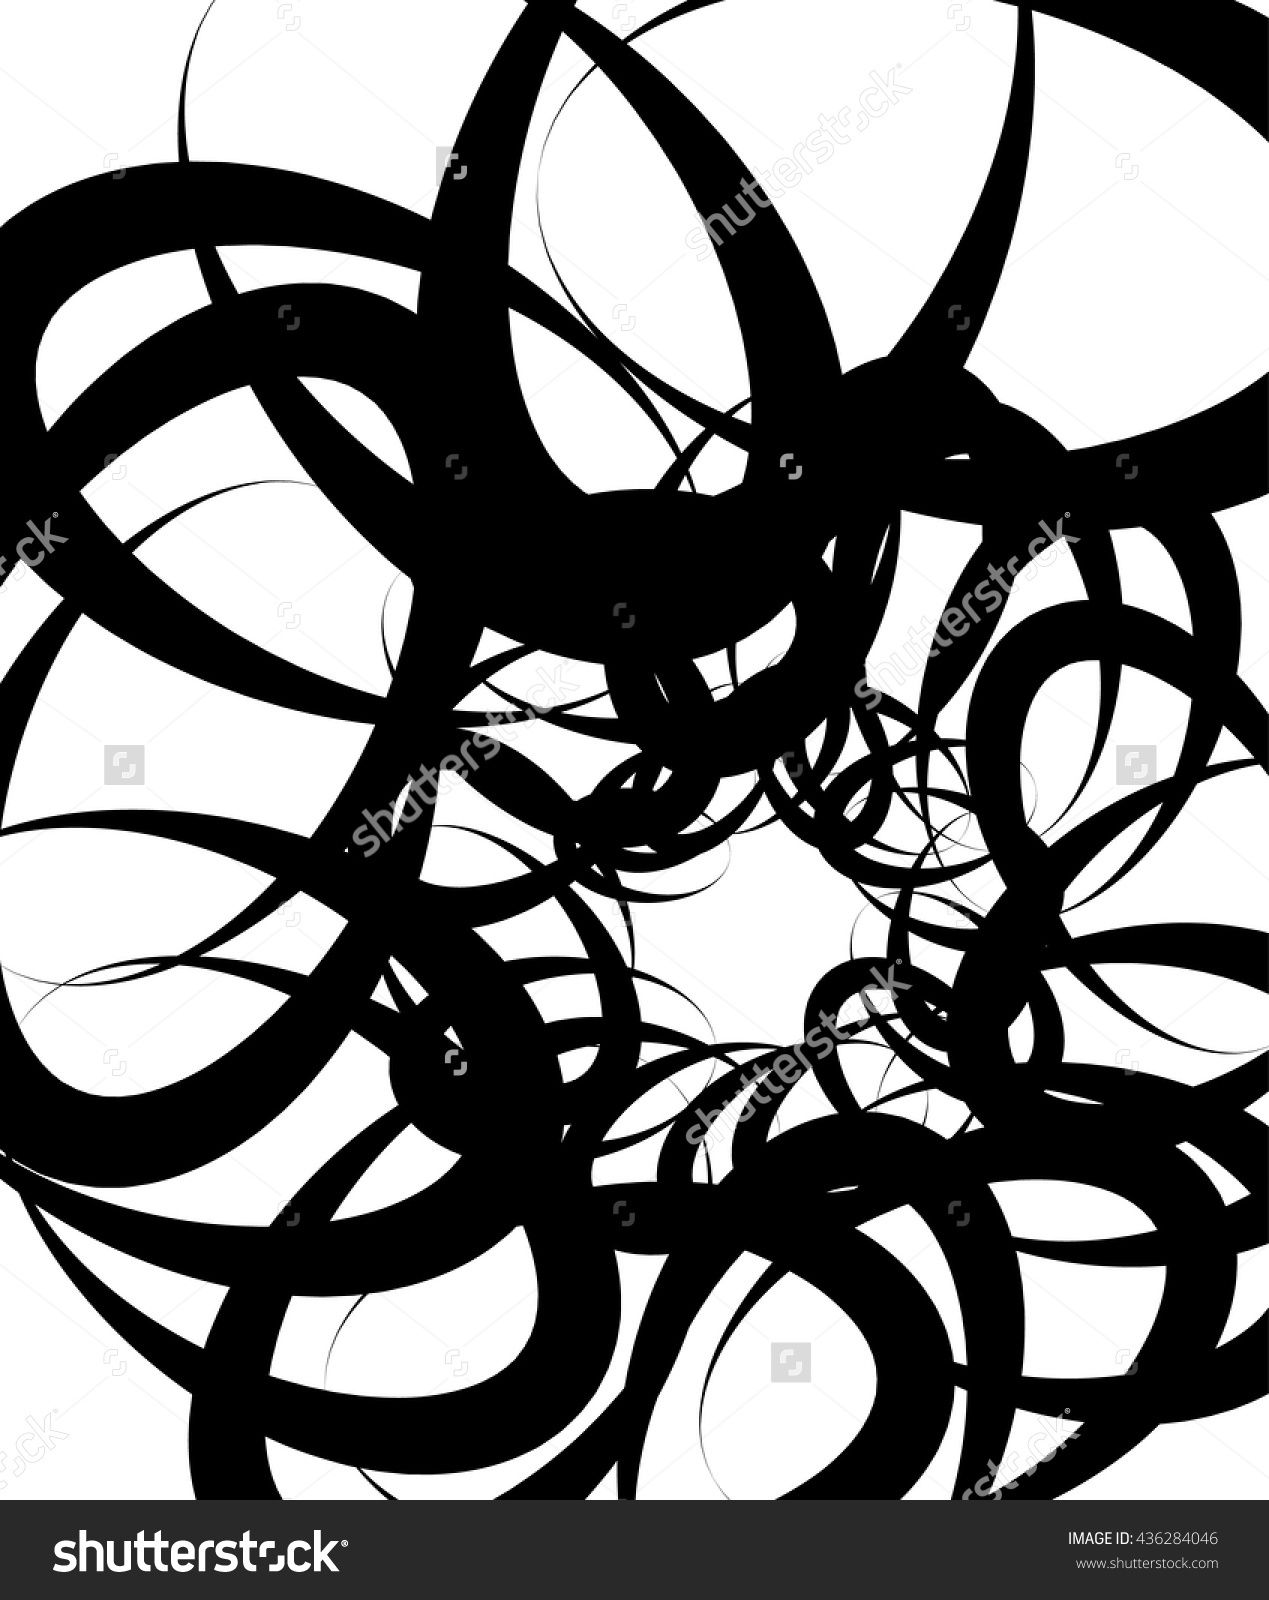 Overlapping tangled shapes. Black and Preview. Save to a